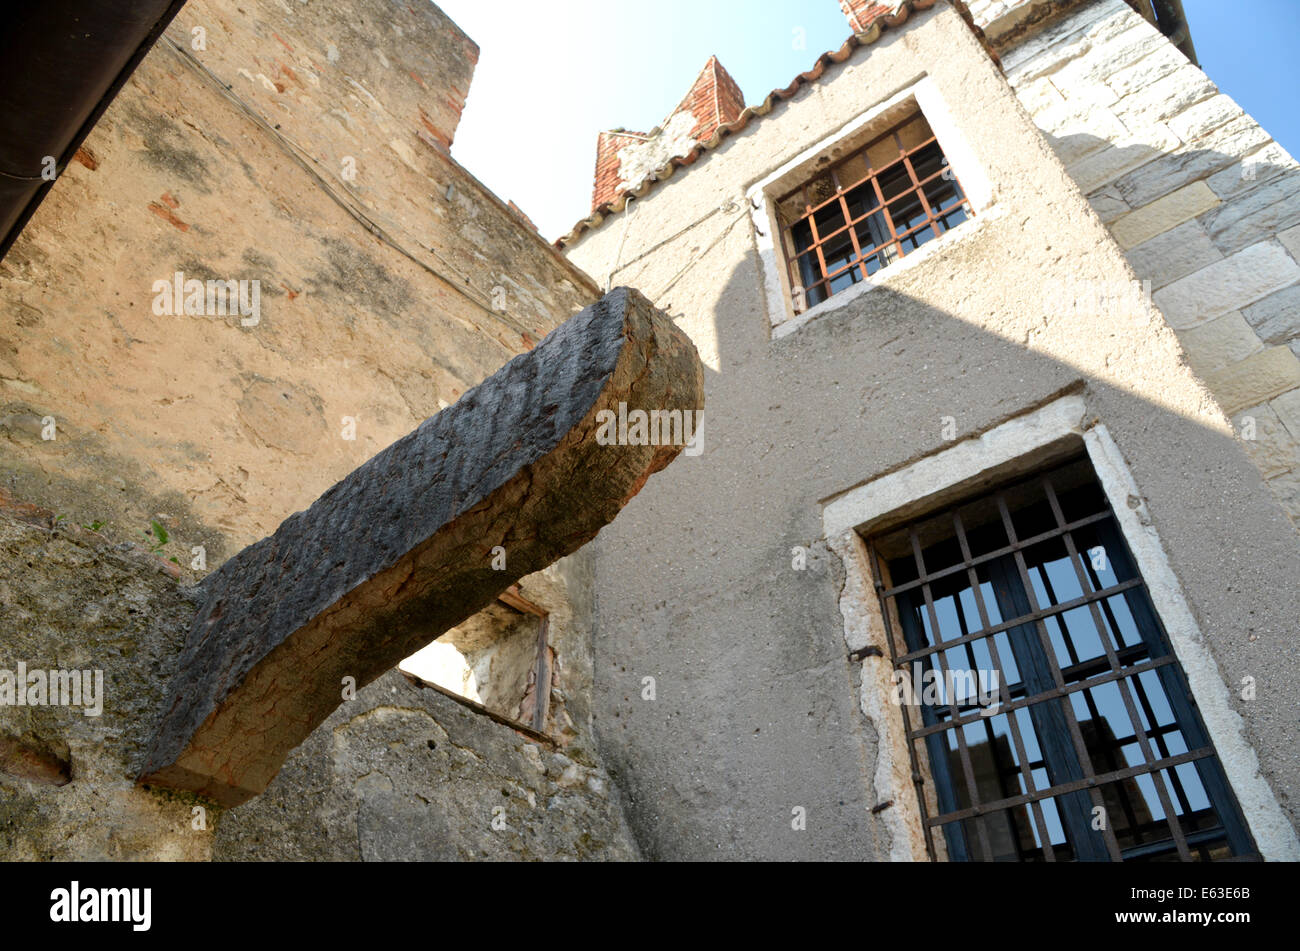 Old wooded joist protrudes from the wall in Malcesine Castle, Lake Garda, Italy - Stock Image